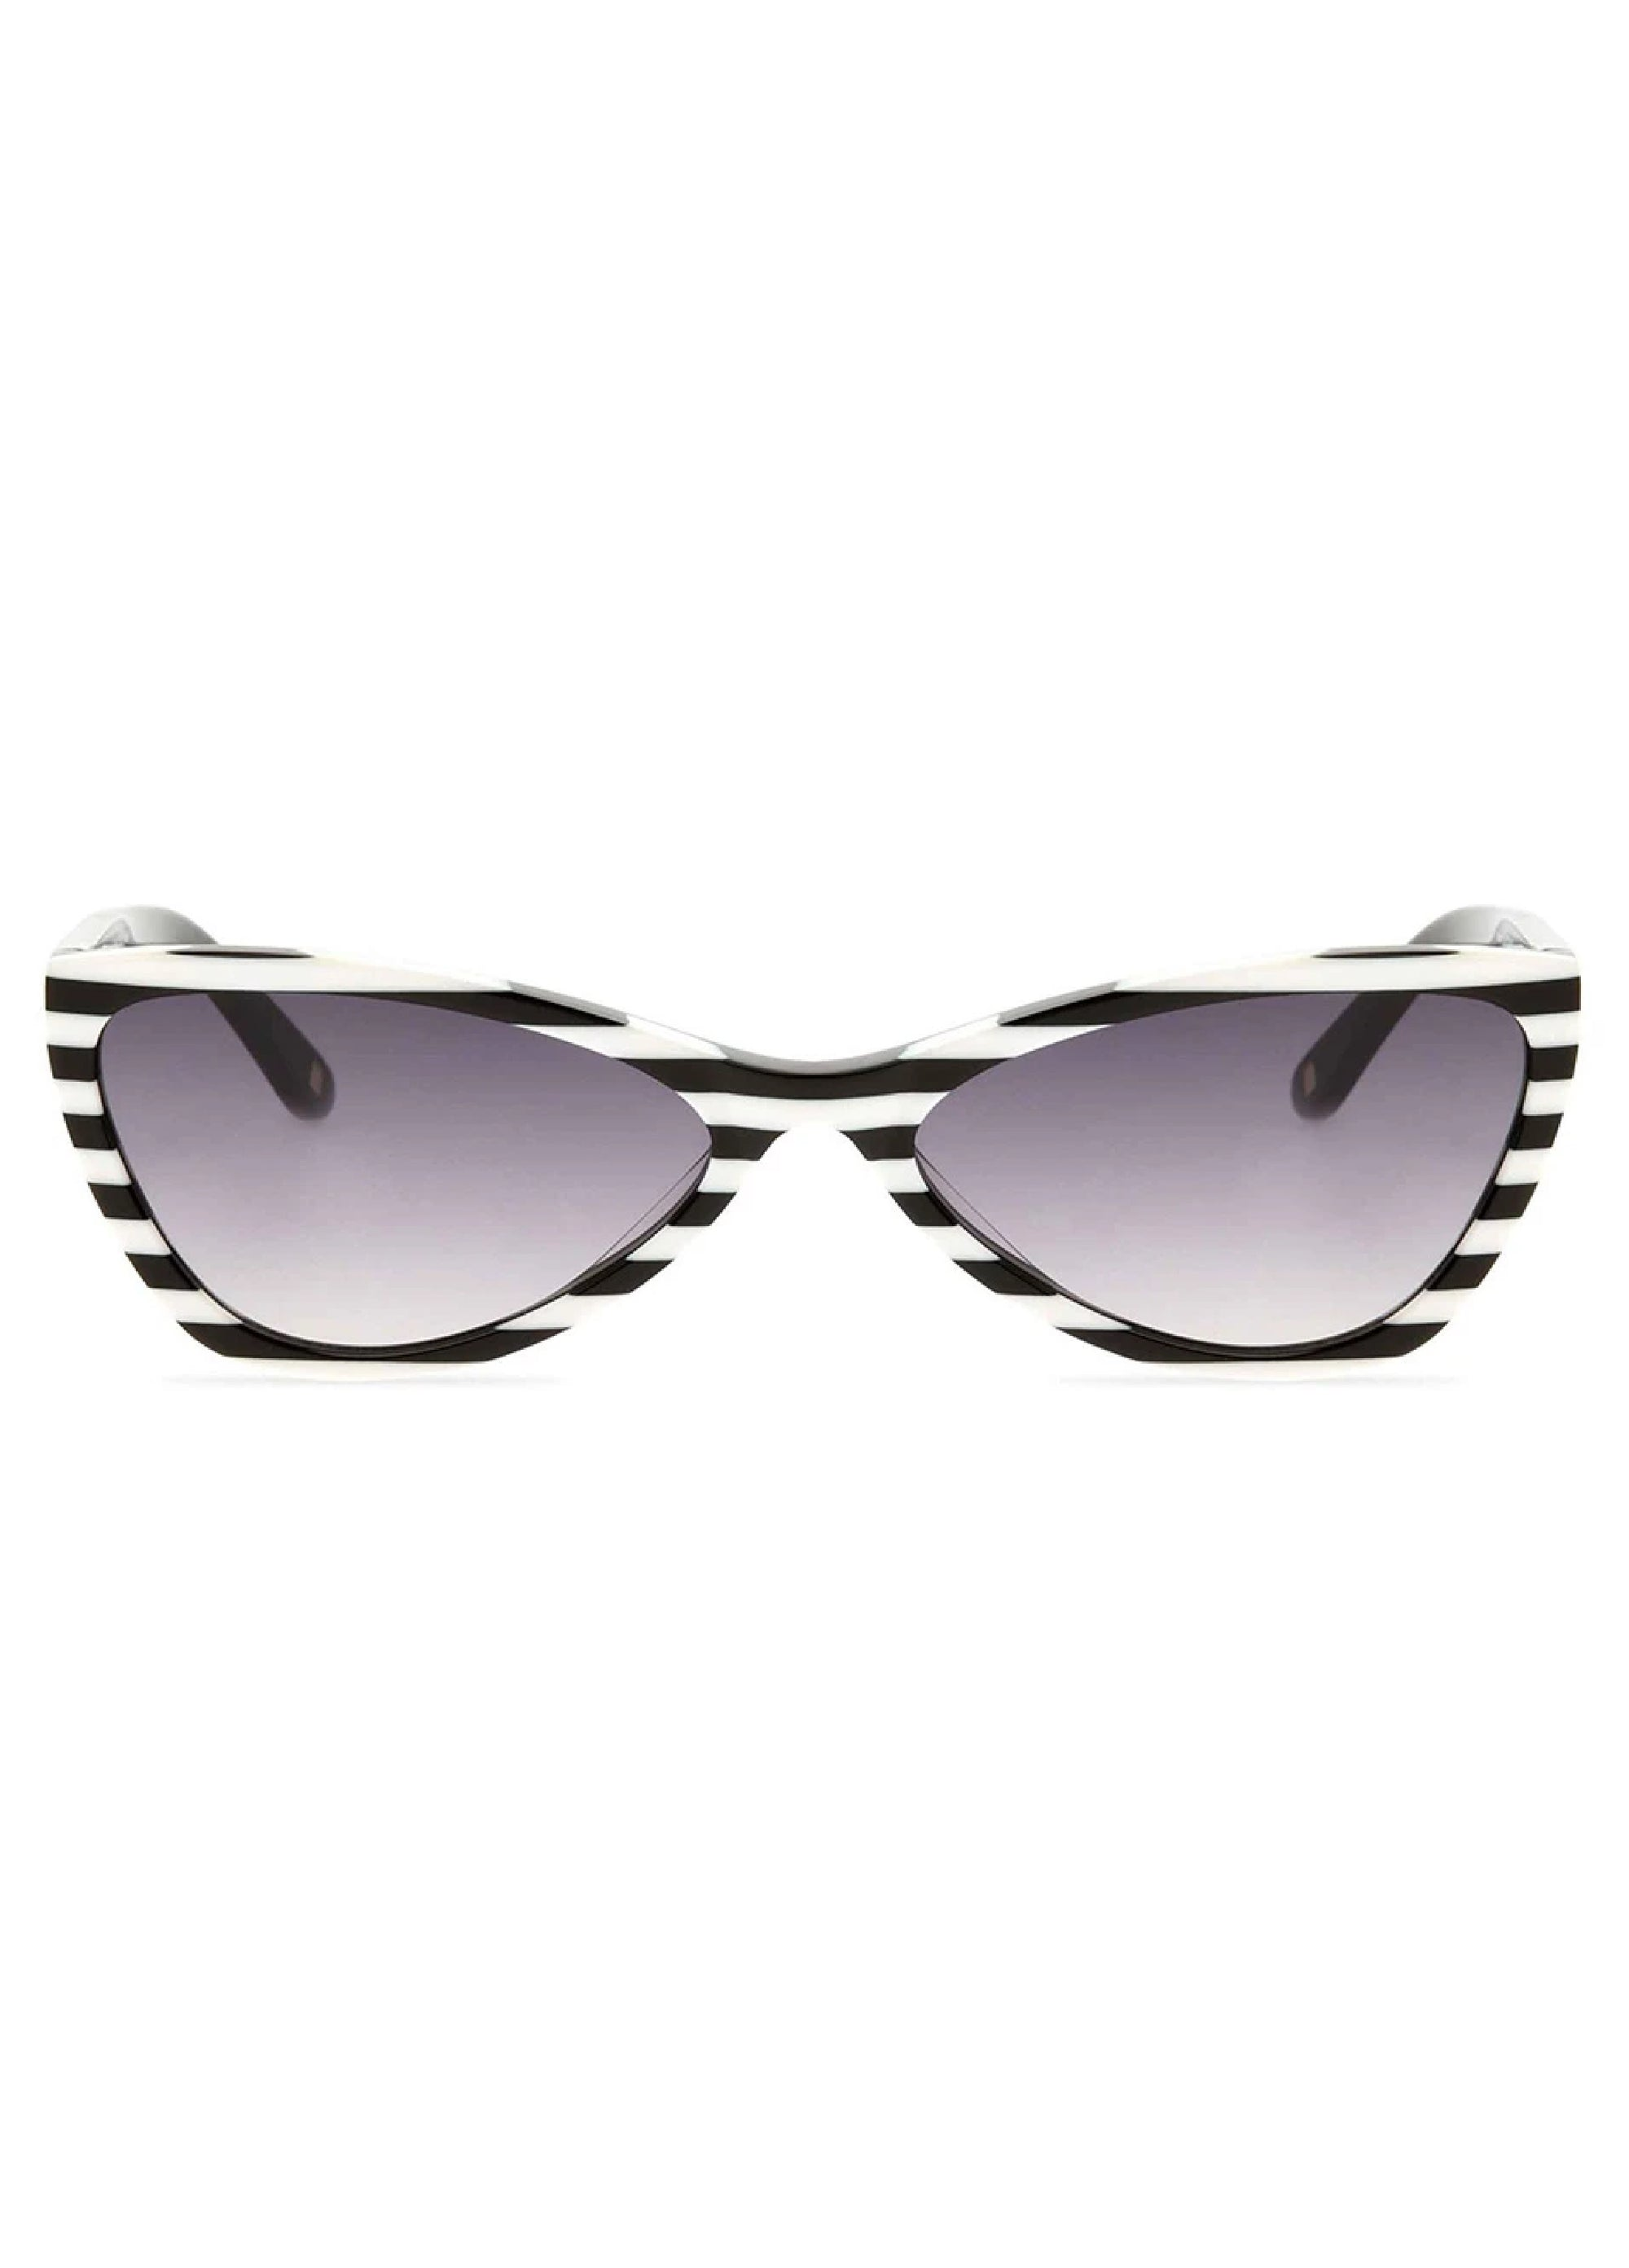 Lentes Carolina Lemke CL7706 02